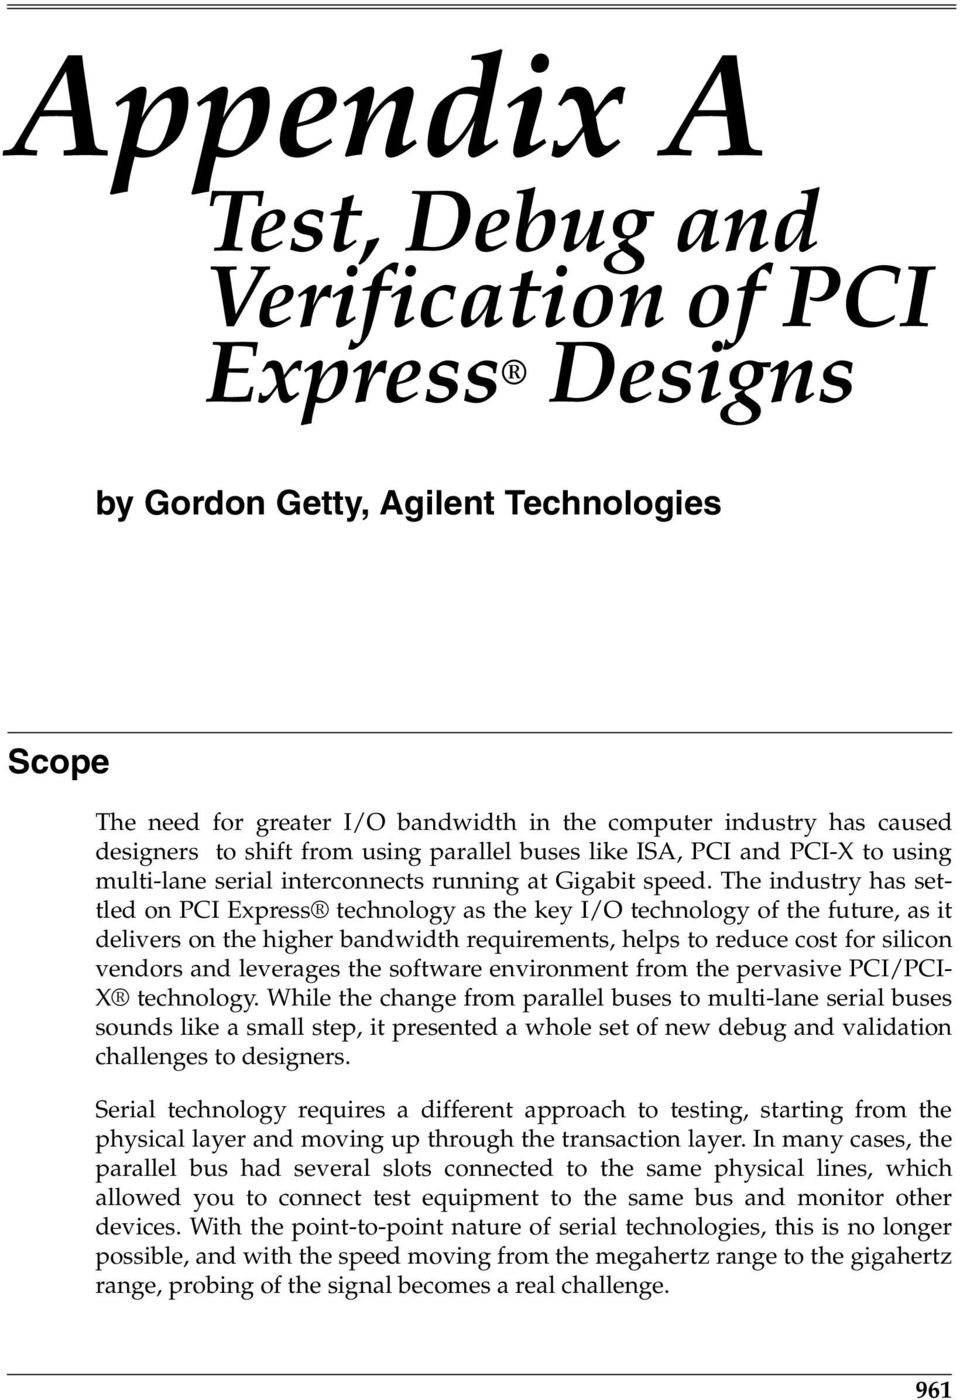 The industry has settled on PCI Express technology as the key I/O technology of the future, as it delivers on the higher bandwidth requirements, helps to reduce cost for silicon vendors and leverages